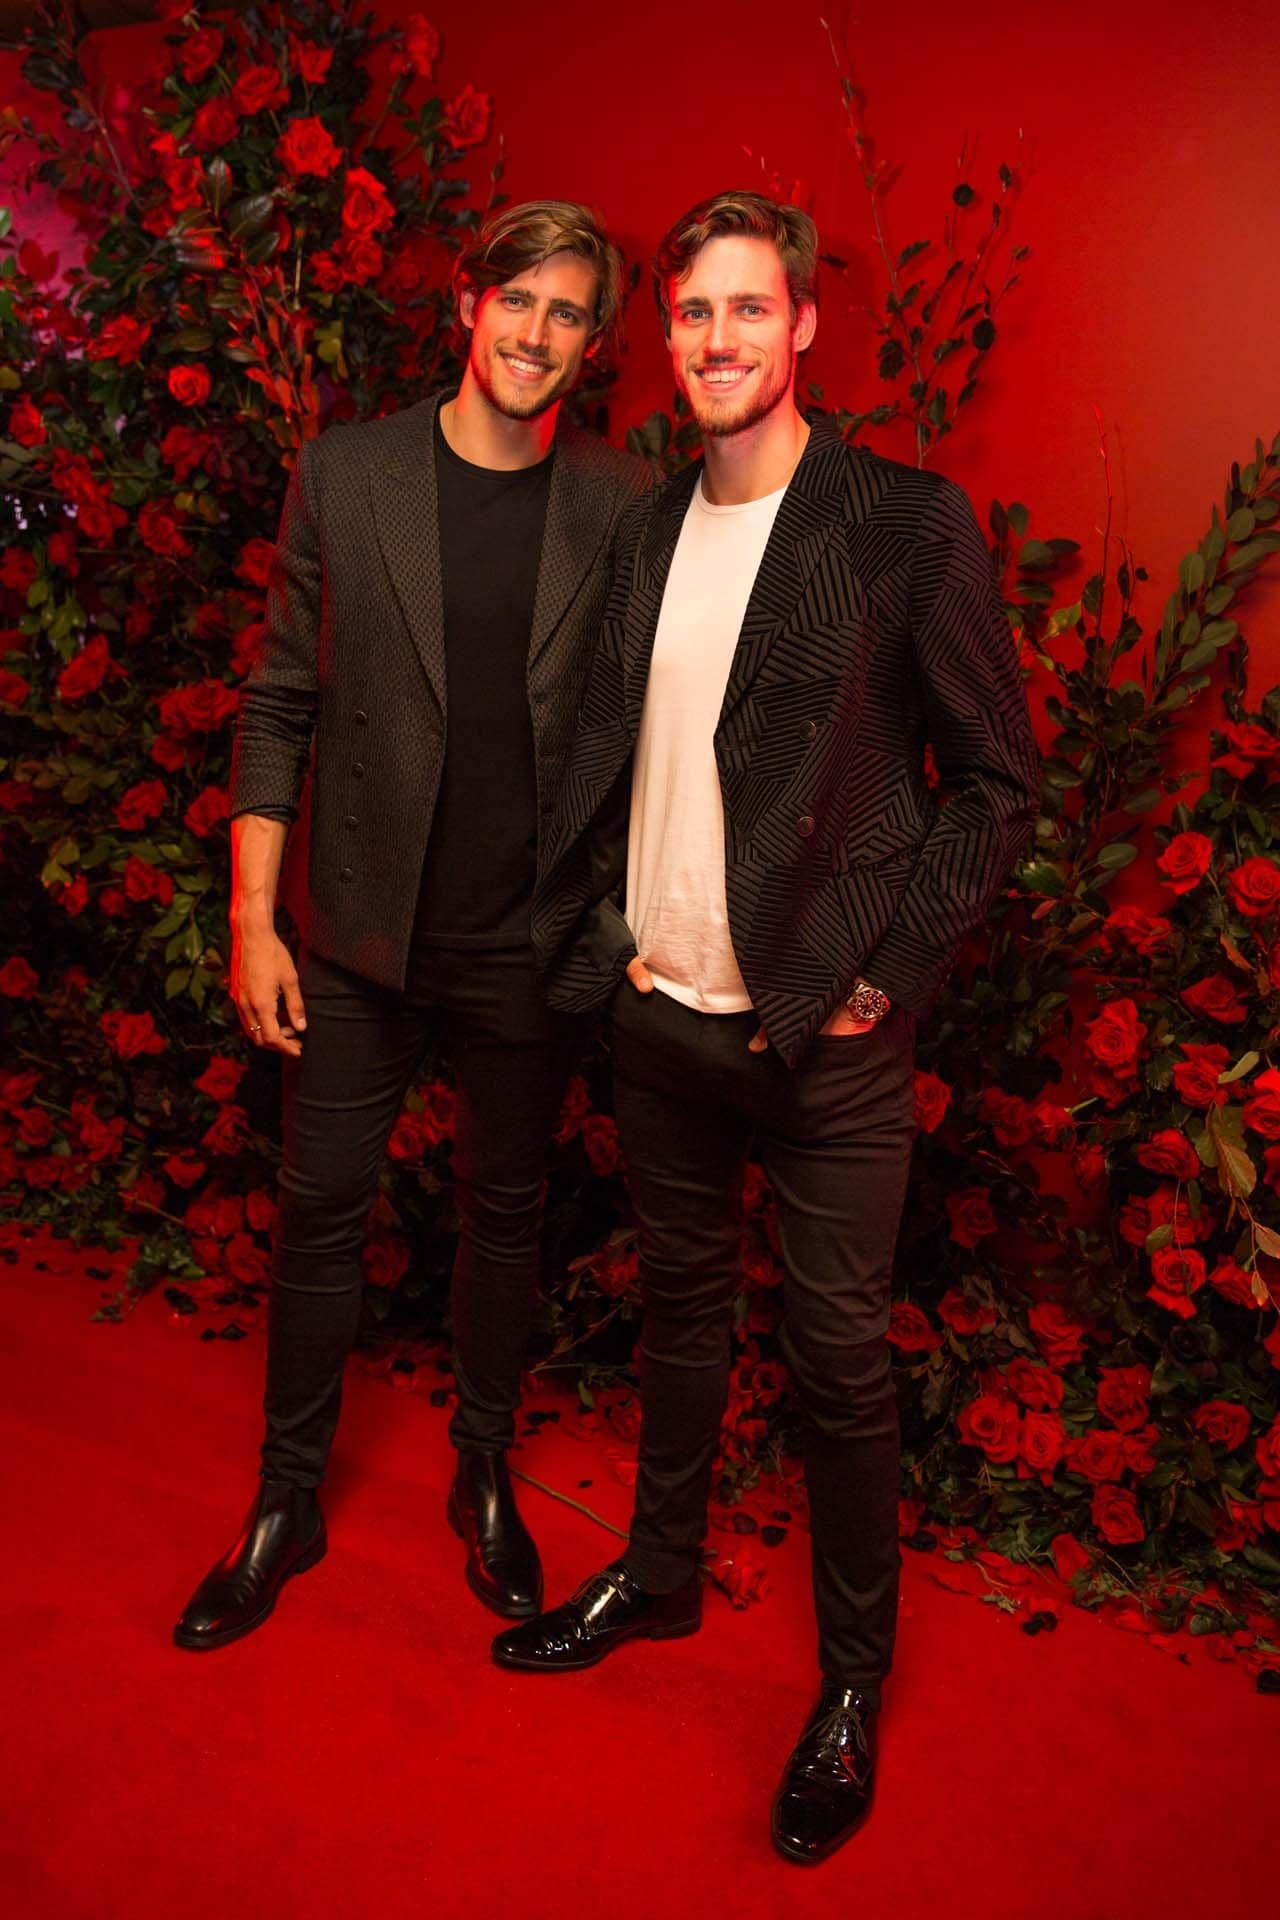 Jordan and Zac Stenmark attend the Giorgio Armani fragrance launch party. Image credit: Rocket K Weijers